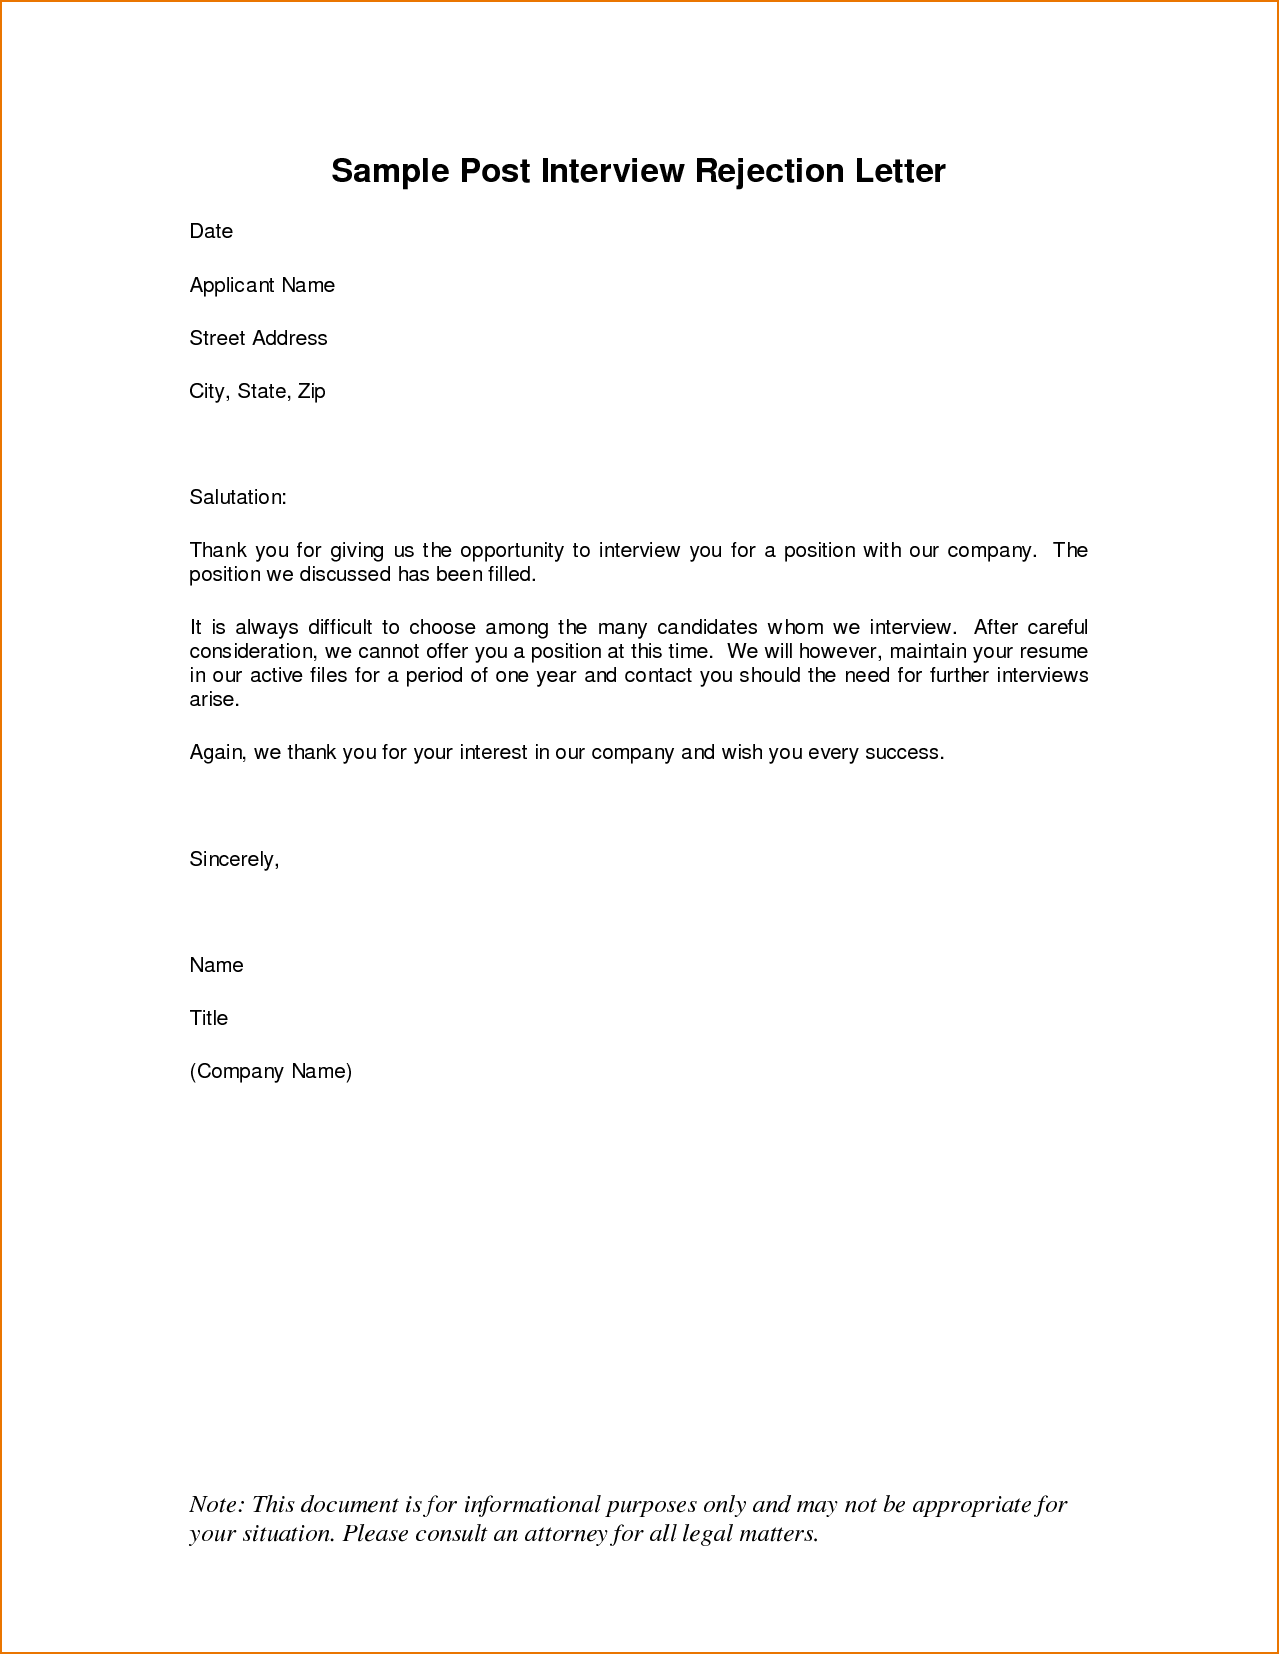 Letter Incident Report Template Memo Rejection Interview Questions